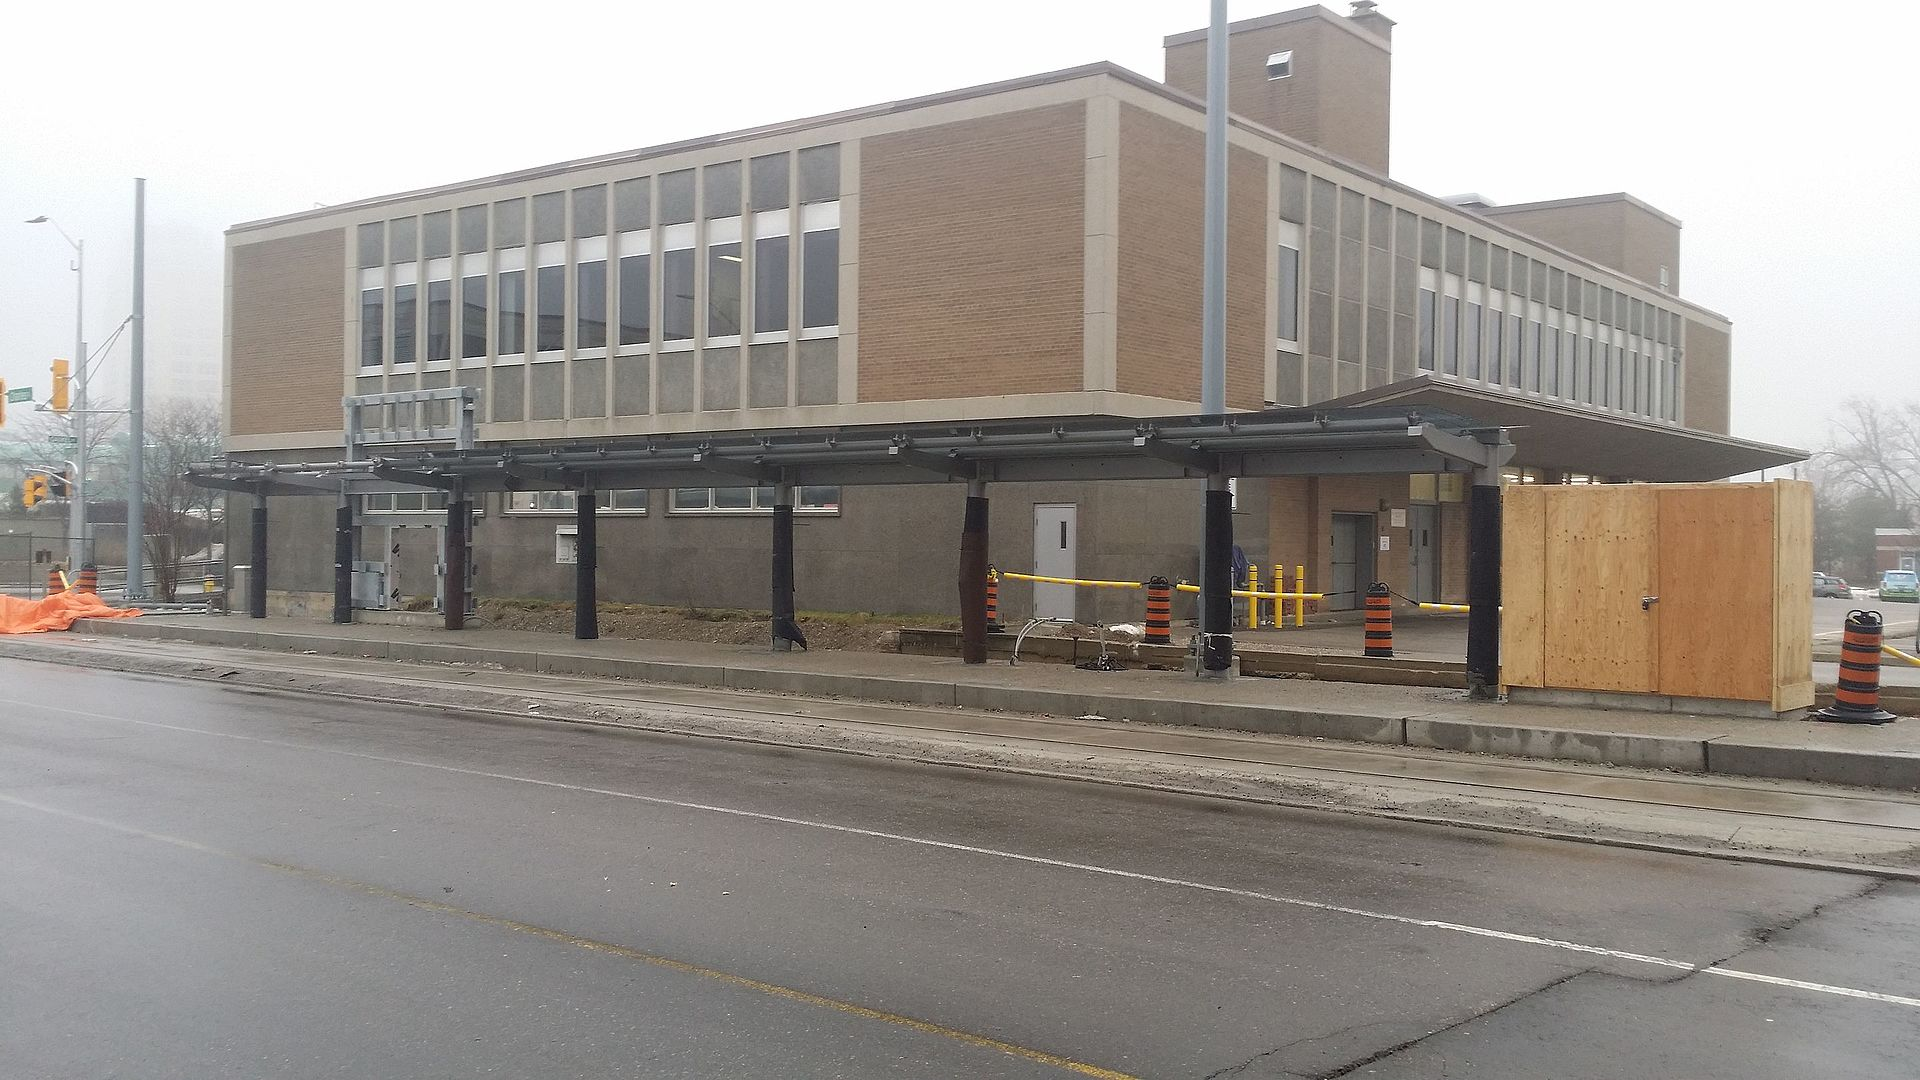 Kitchener Bus Terminal  Charles Street West Kitchener On